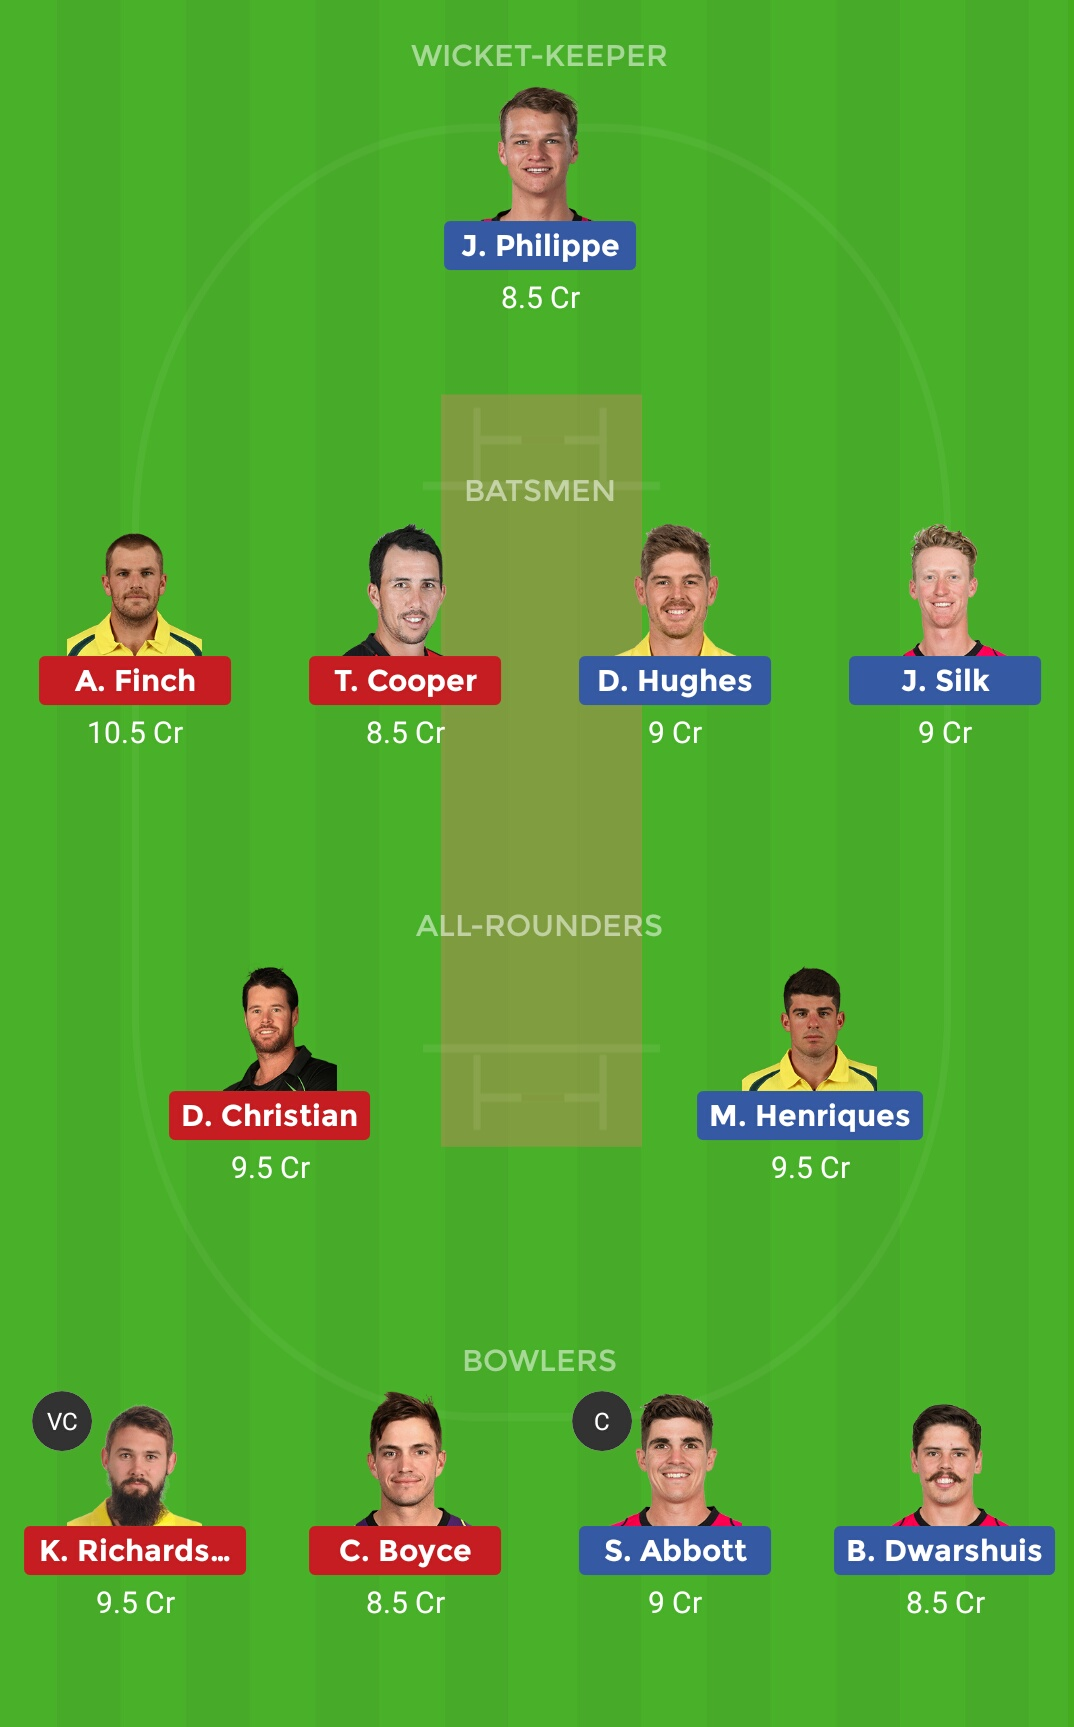 Melbourne Renegades vs Sydney Sixers 2nd Semi-Final T20 Big Bash League 2018-19